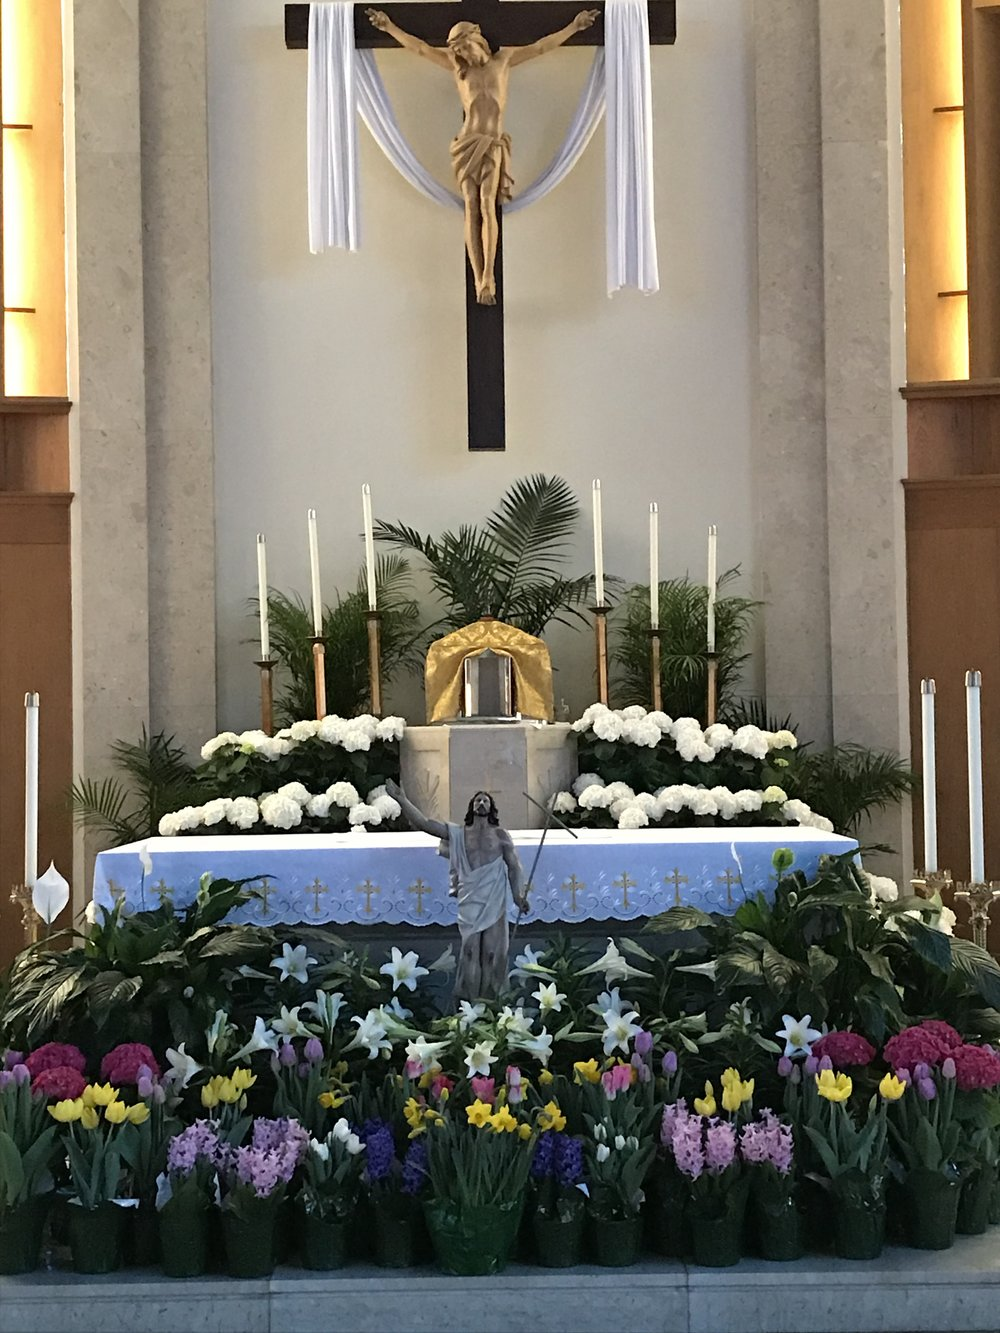 Alleluia, He has Risen!  He has Risen Indeed!